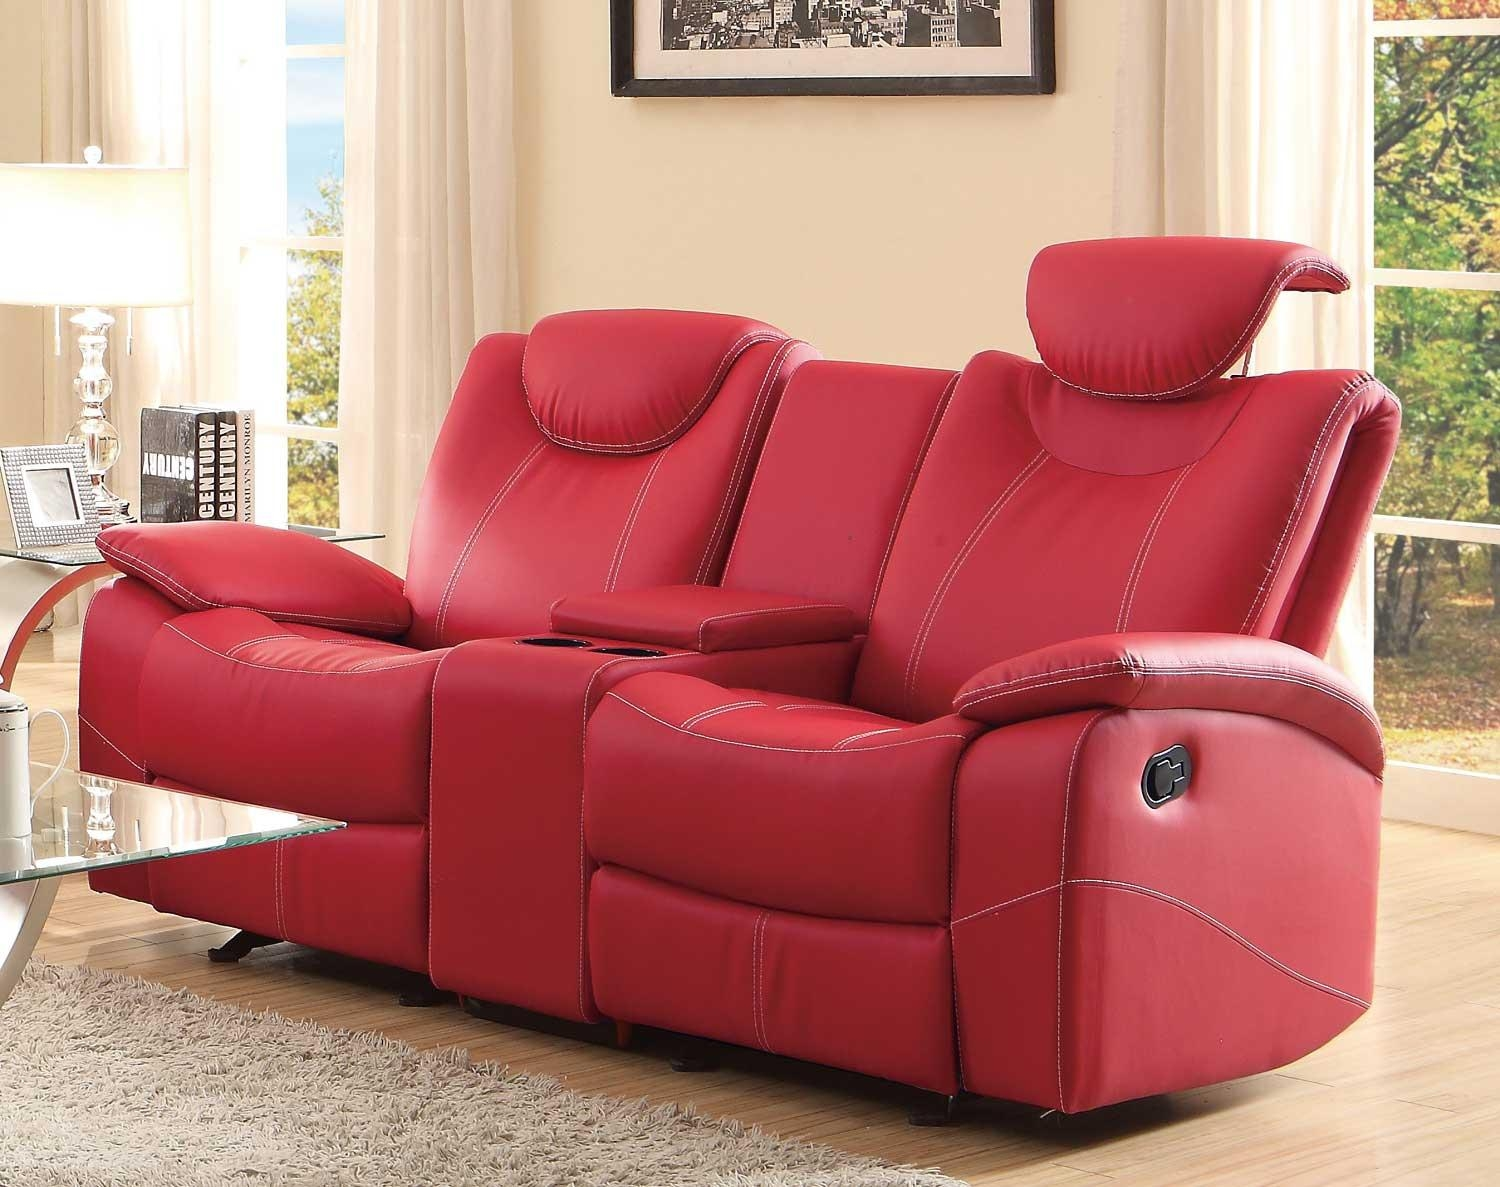 Sofas Center : Double Reclinerofa With Console Reclining In Sofas With Console (View 13 of 20)